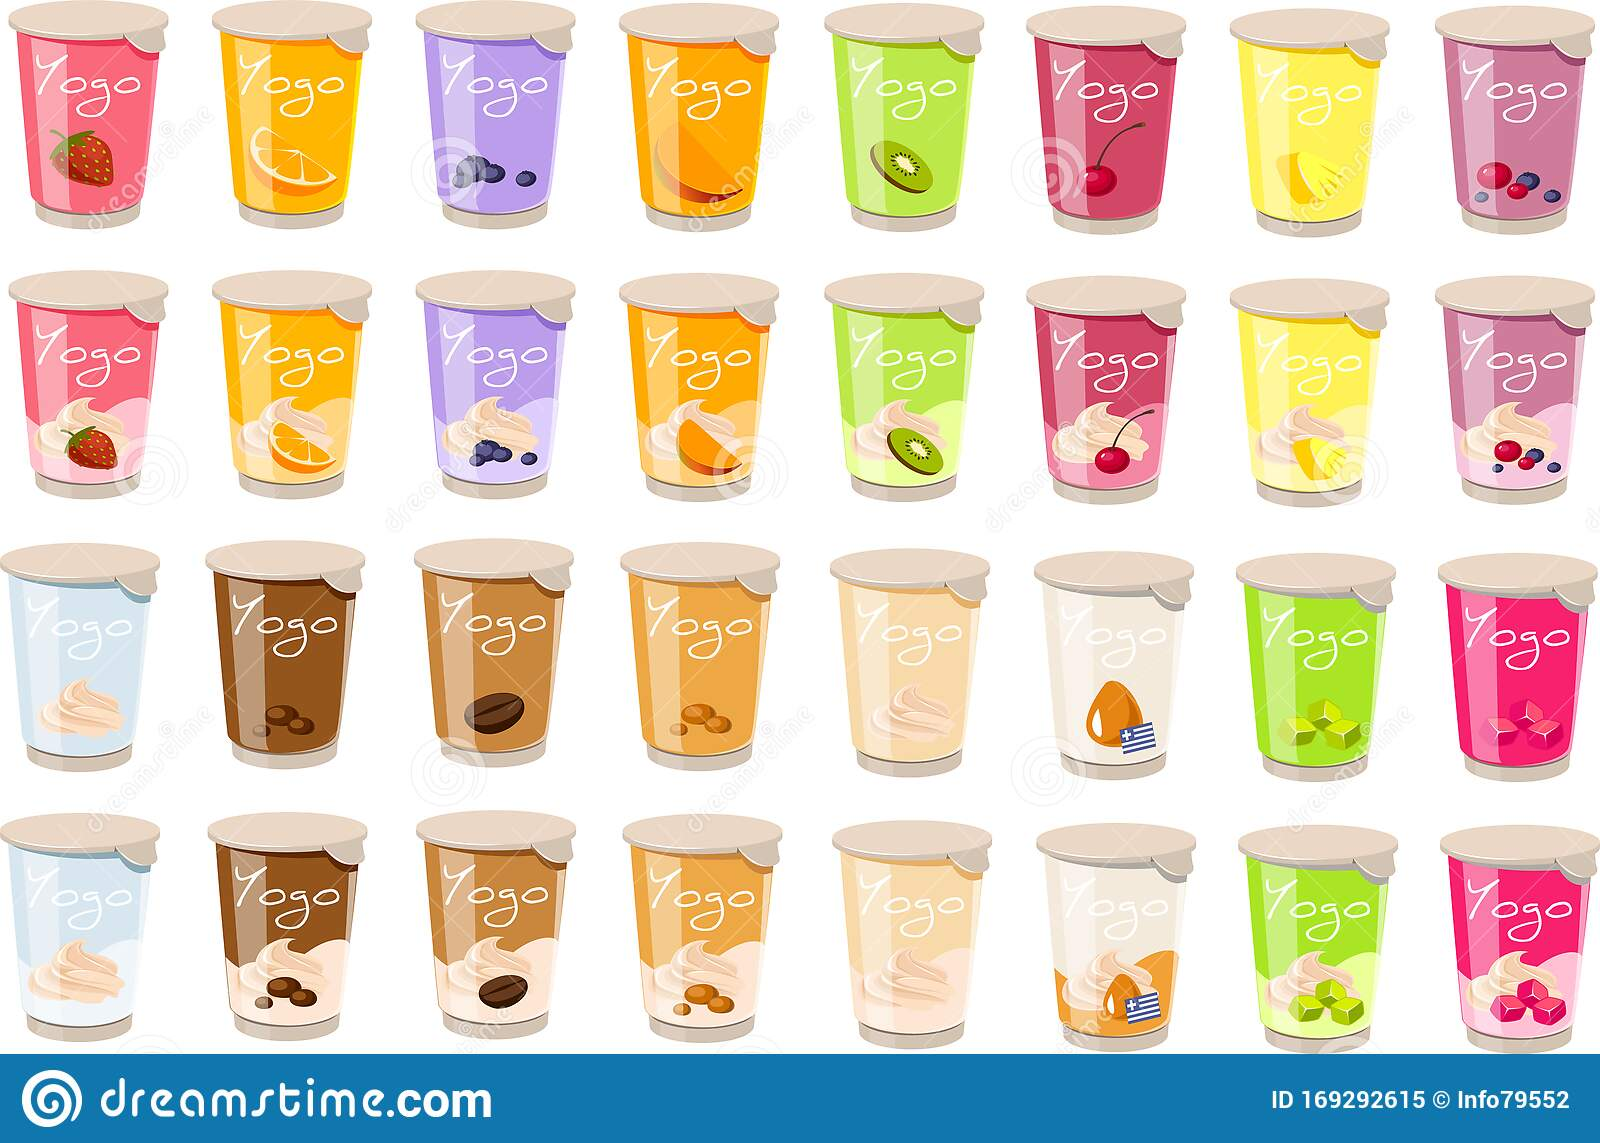 Vector Illustration Of Various Kinds Of Yogurt In Plastic Containers Stock Vector Illustration Of Drink Diet 169292615